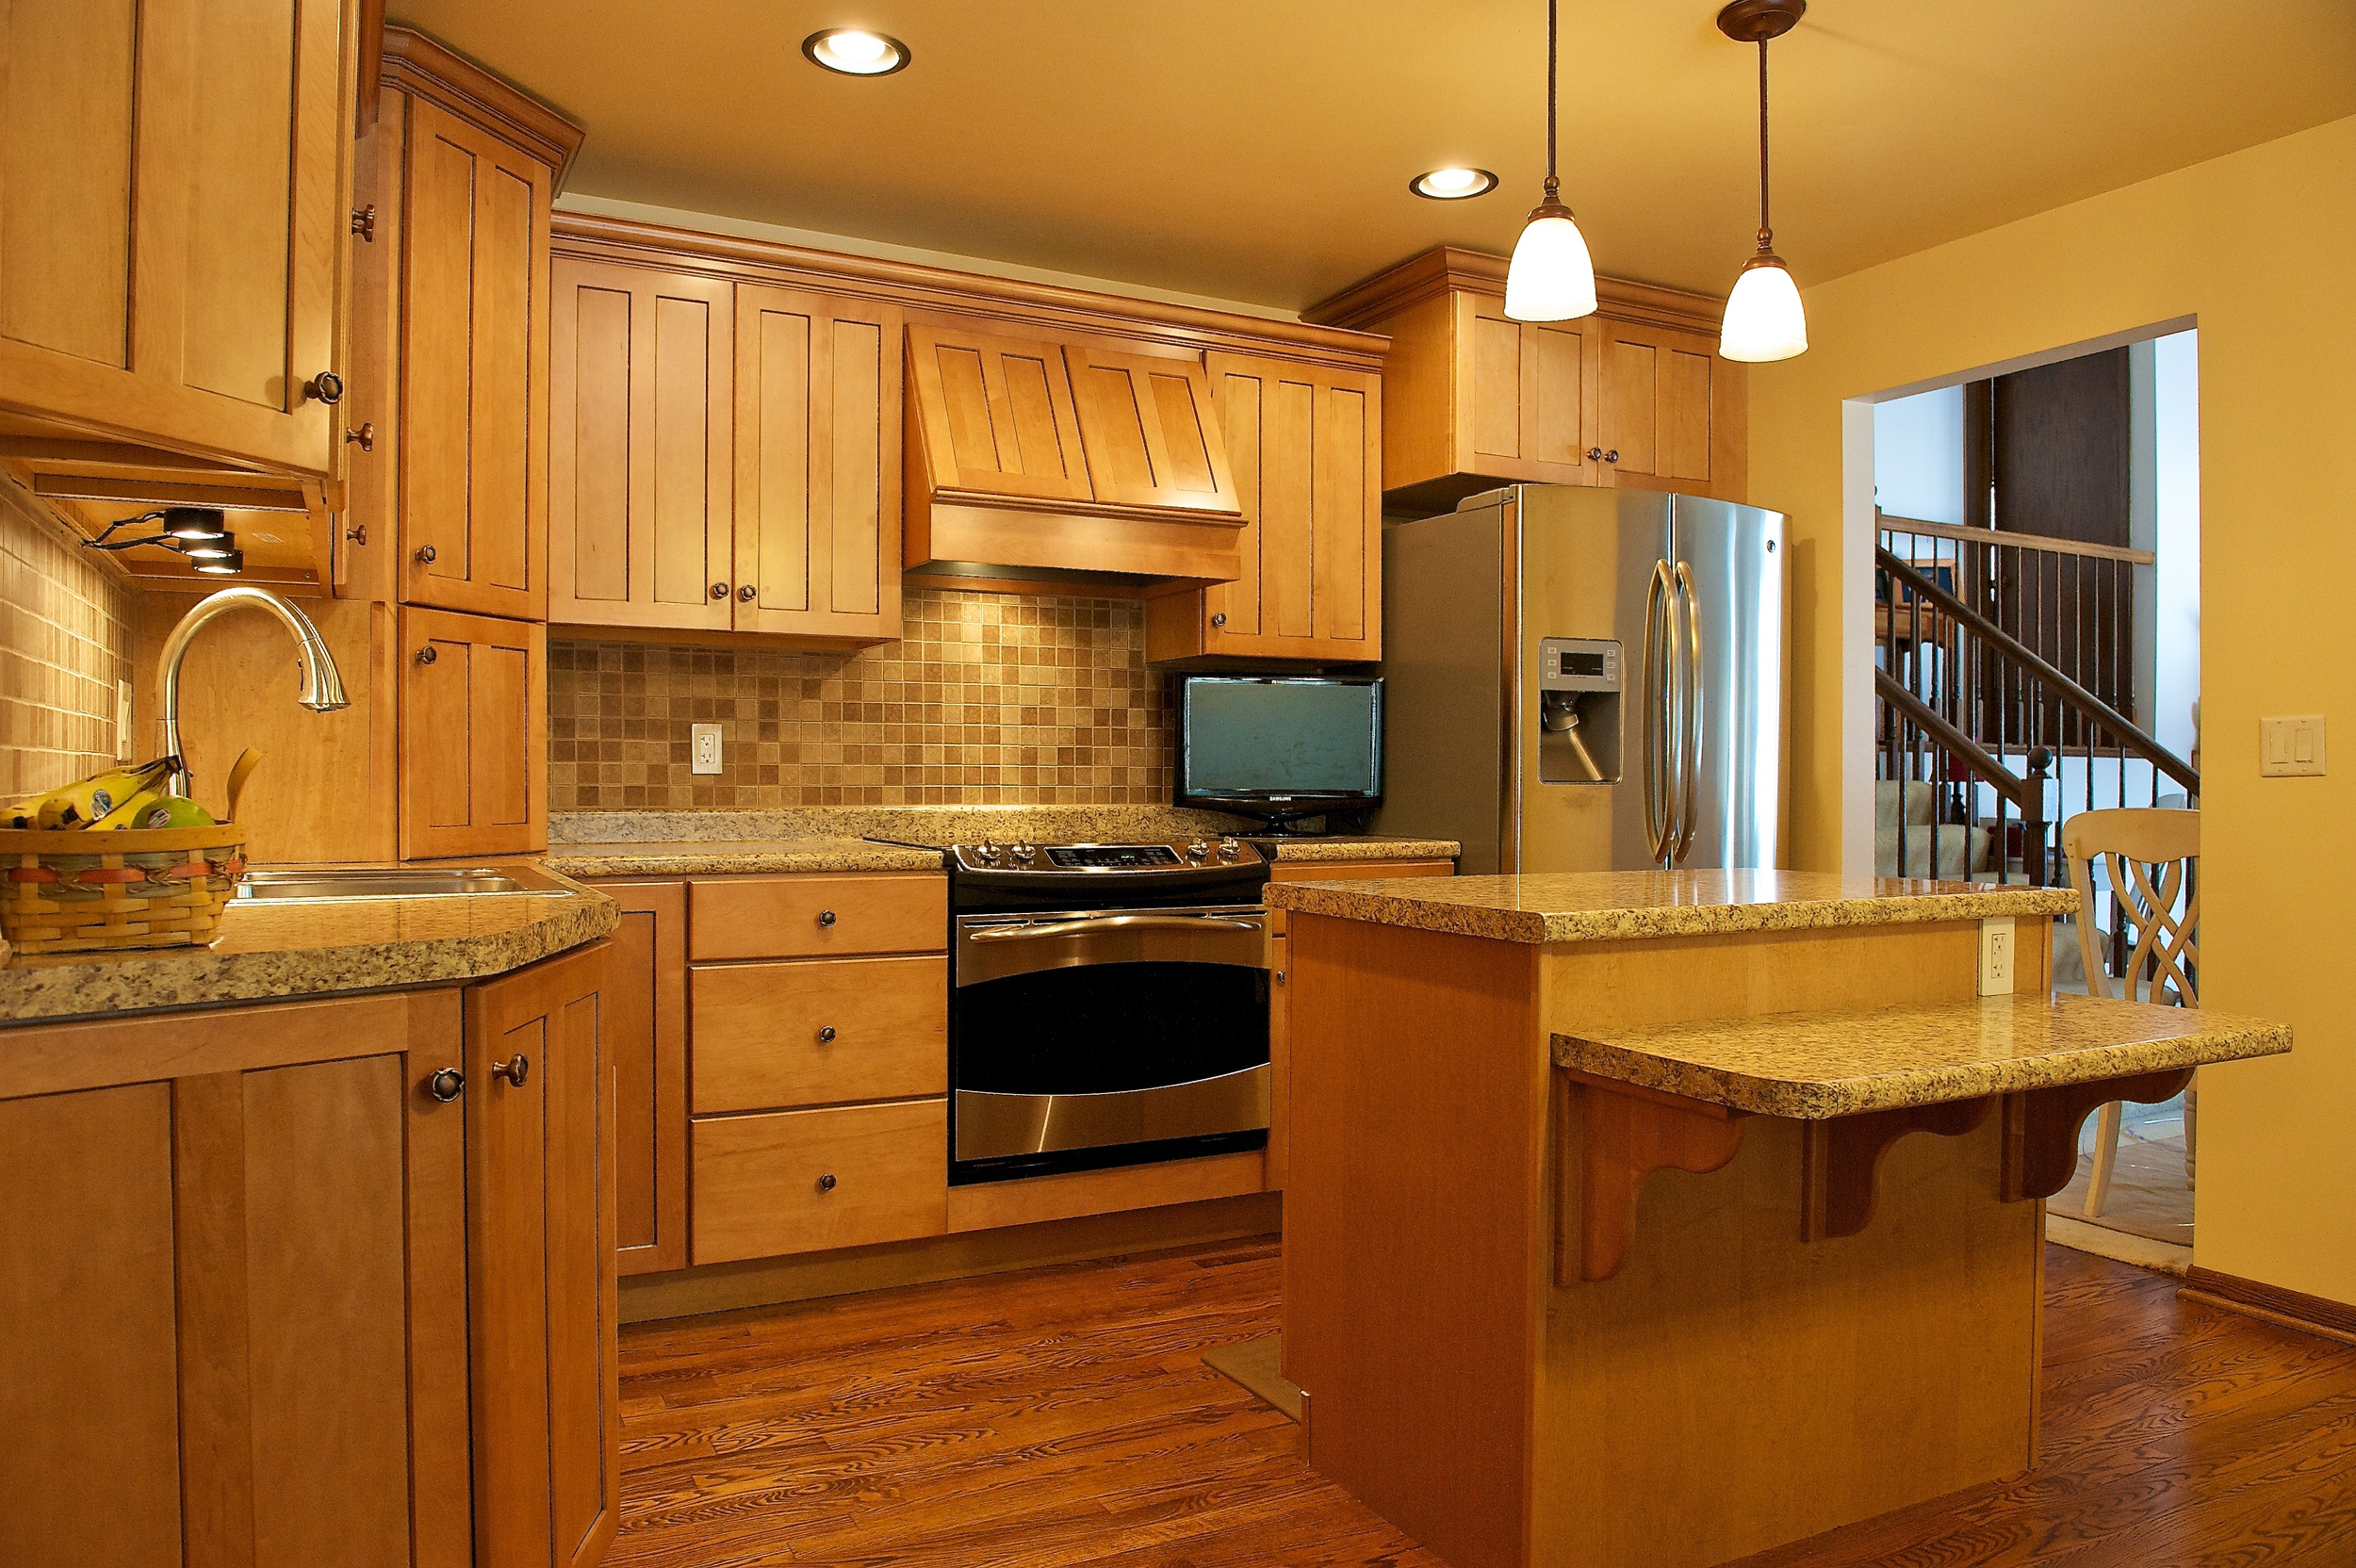 LCF - Kitchen Remodel - 10.jpg